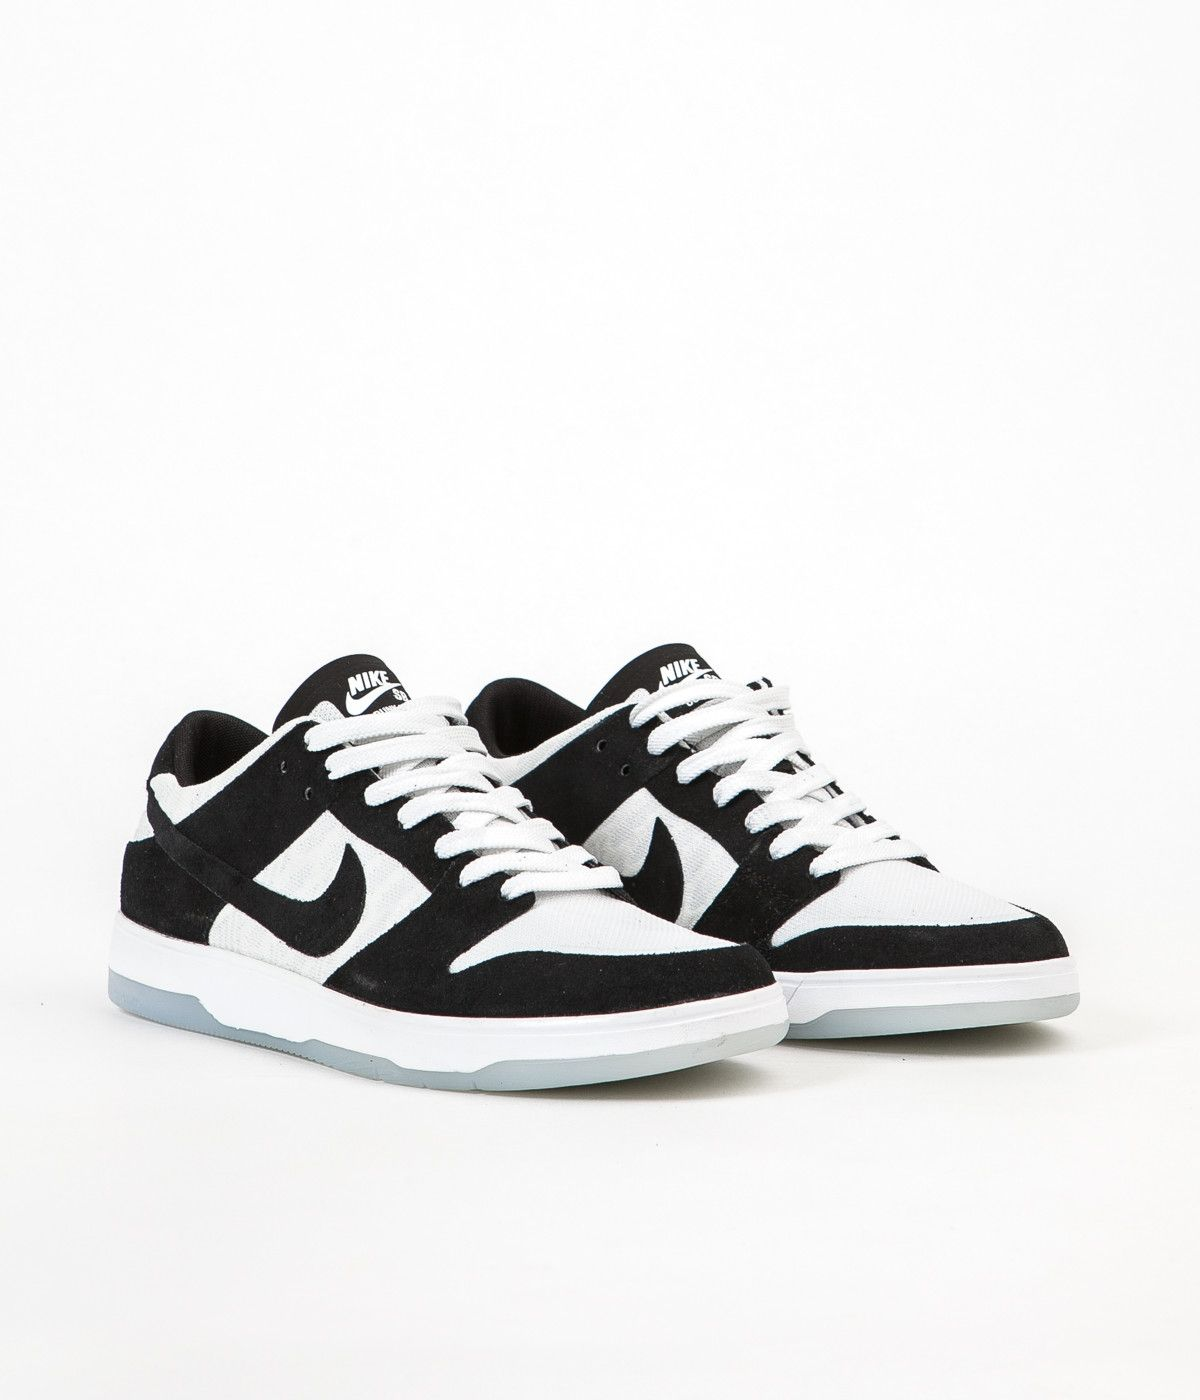 new style fd33b 0460a Nike SB Dunk Low Elite Oski Shoes - Black  White - Clear - Black